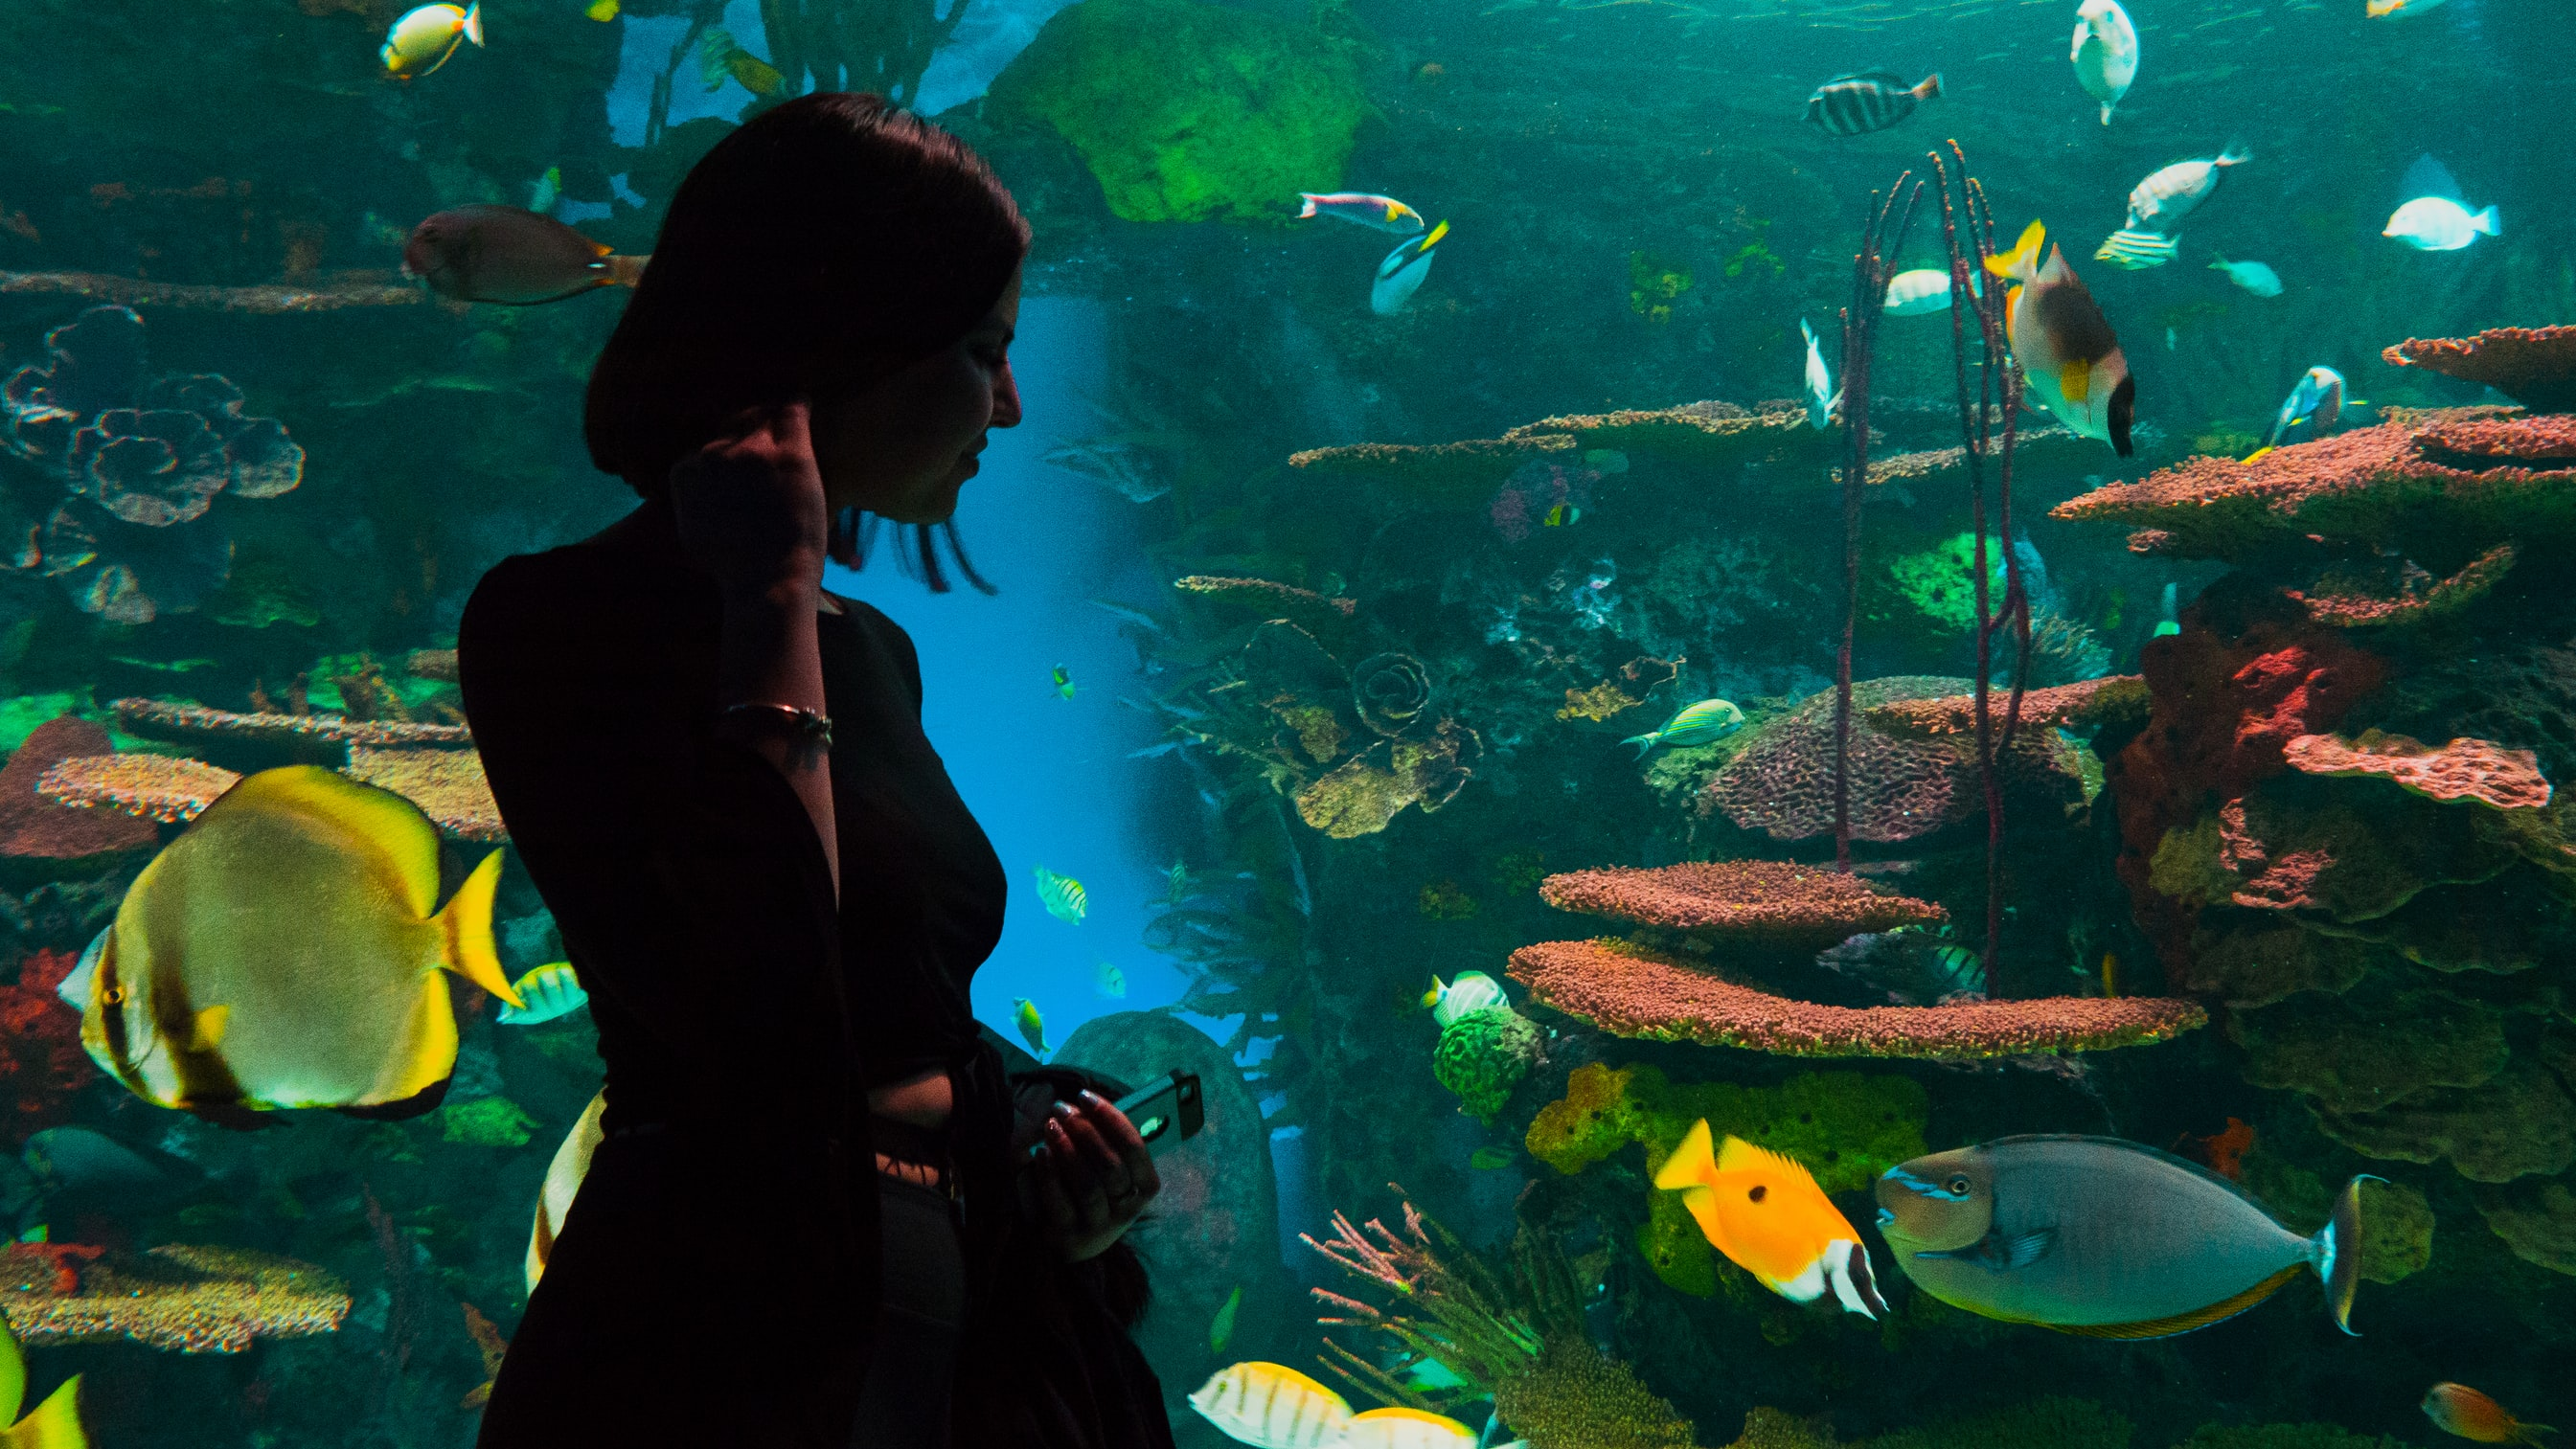 A lady watching fishes at an aquarium